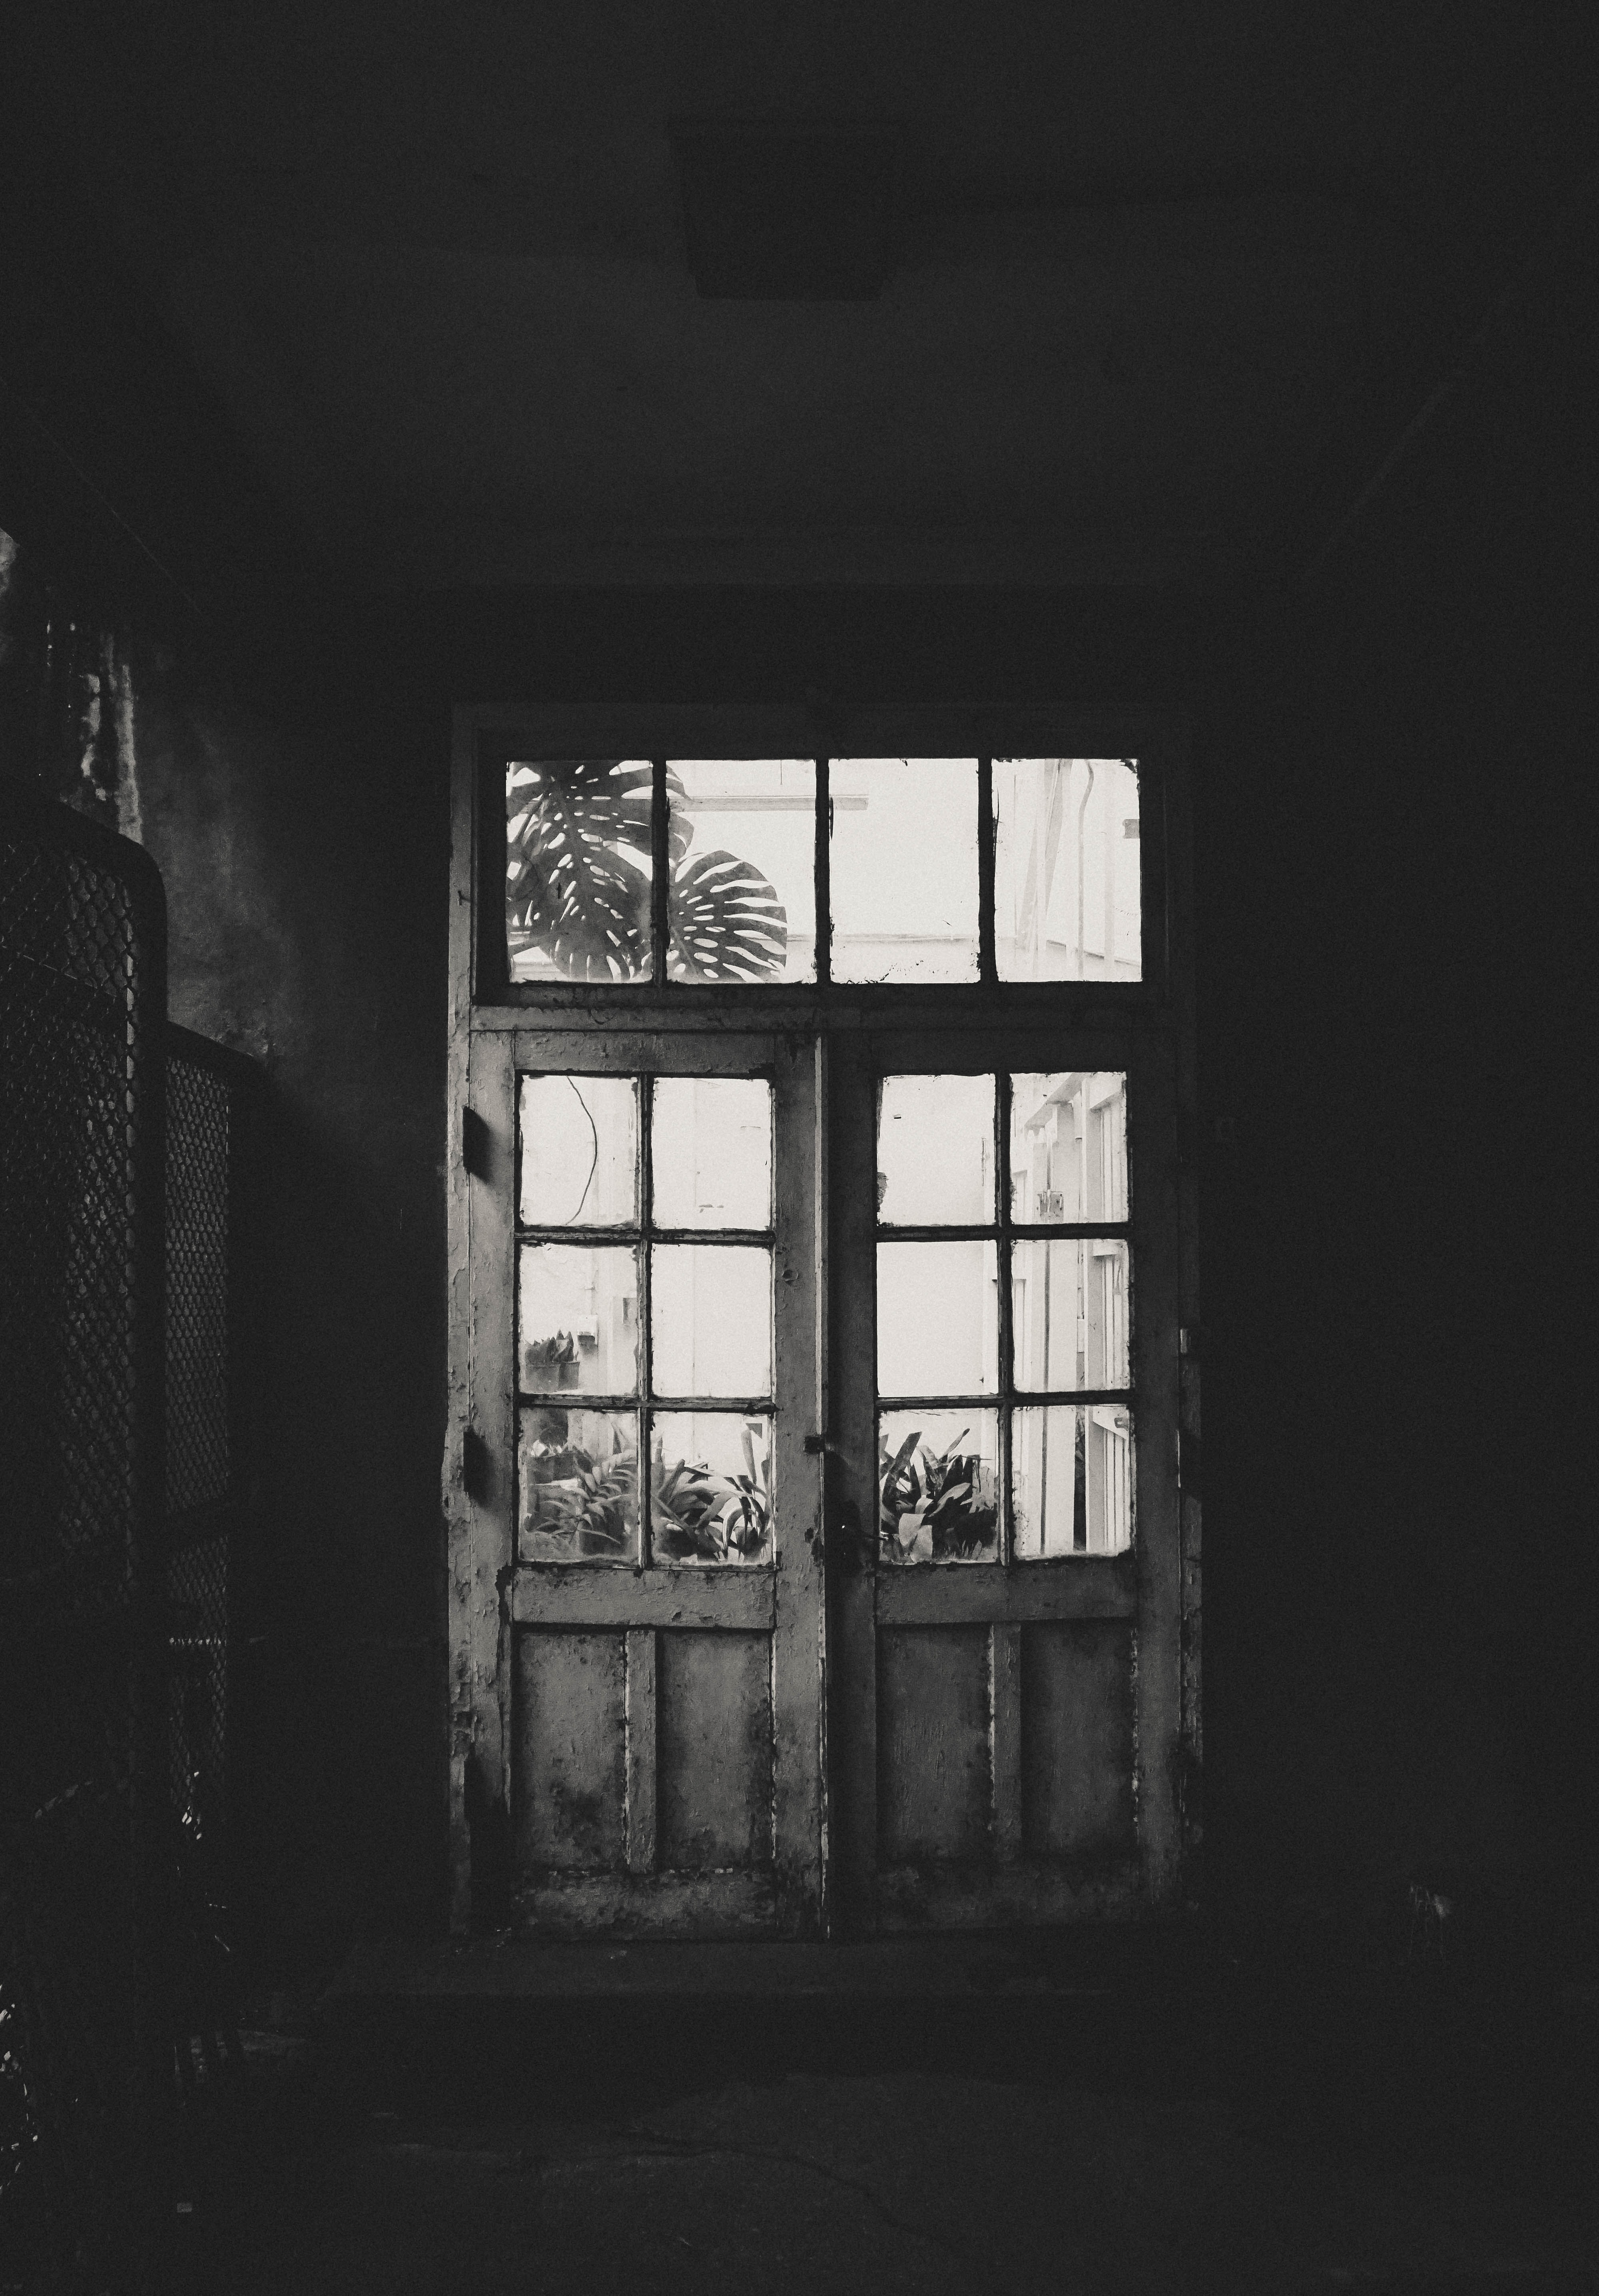 Abandoned interior of a house showing a white run-down door leading outside